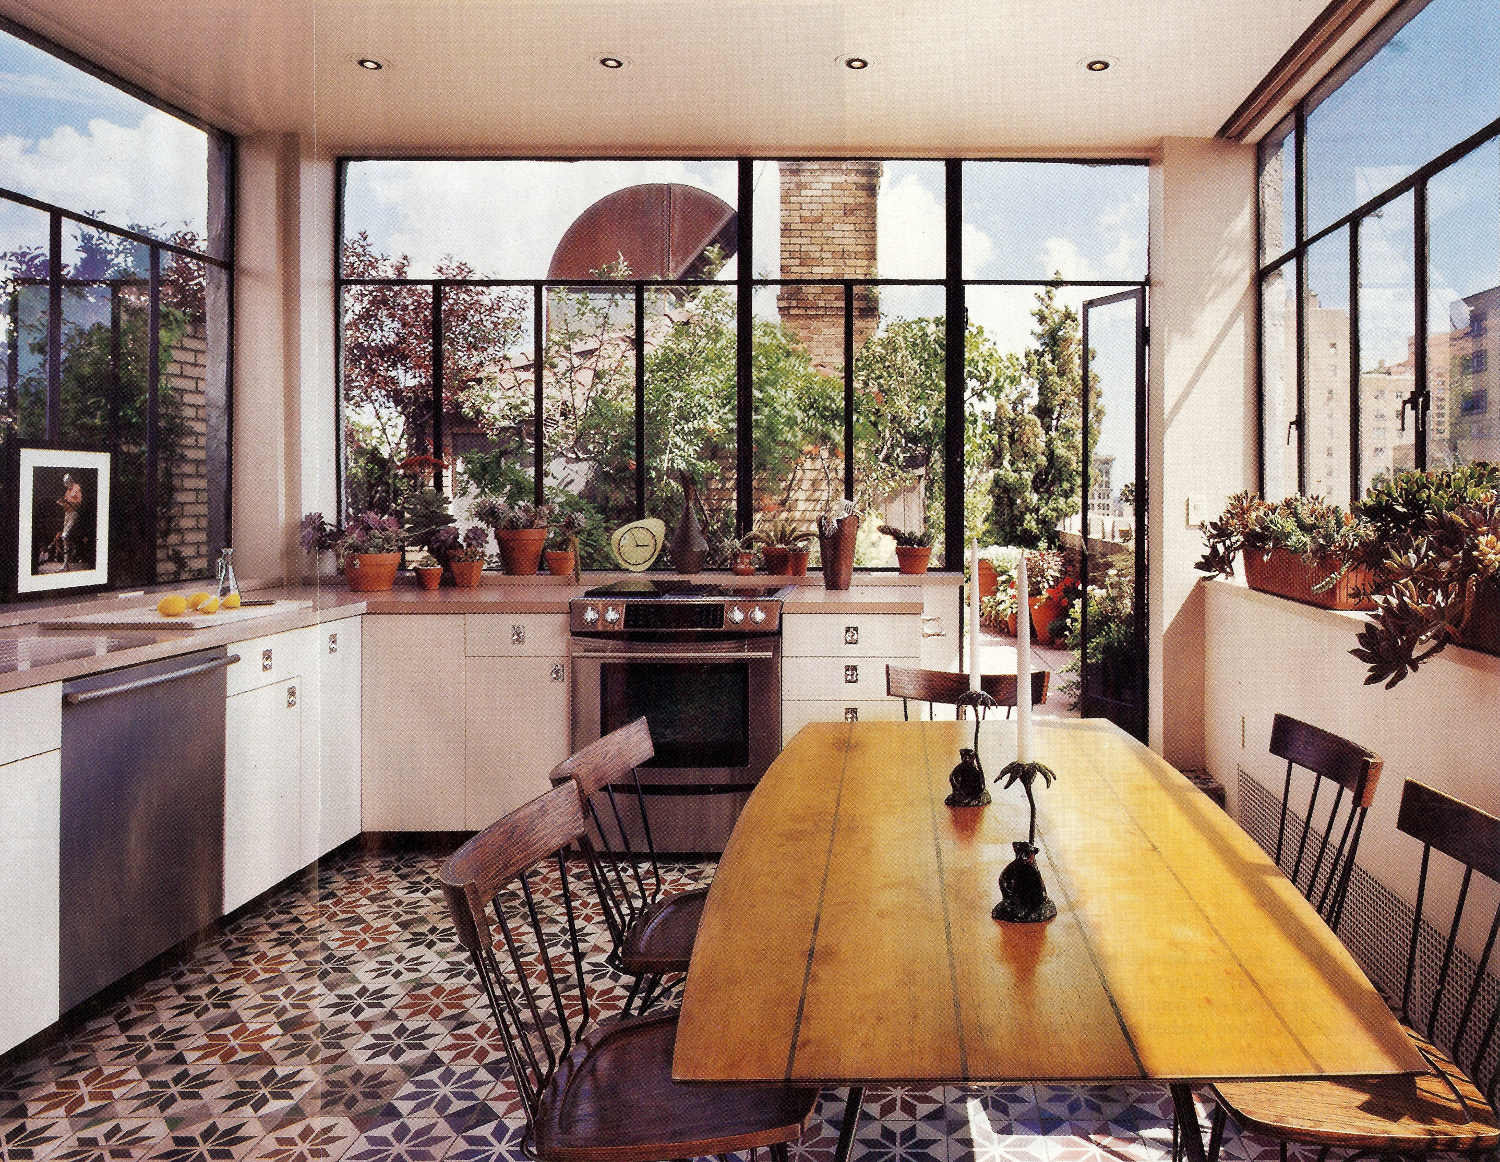 Penthouse kitchen a patterned moroccan tile floor adds spice to a stunning city penthouse kitchen dailygadgetfo Gallery